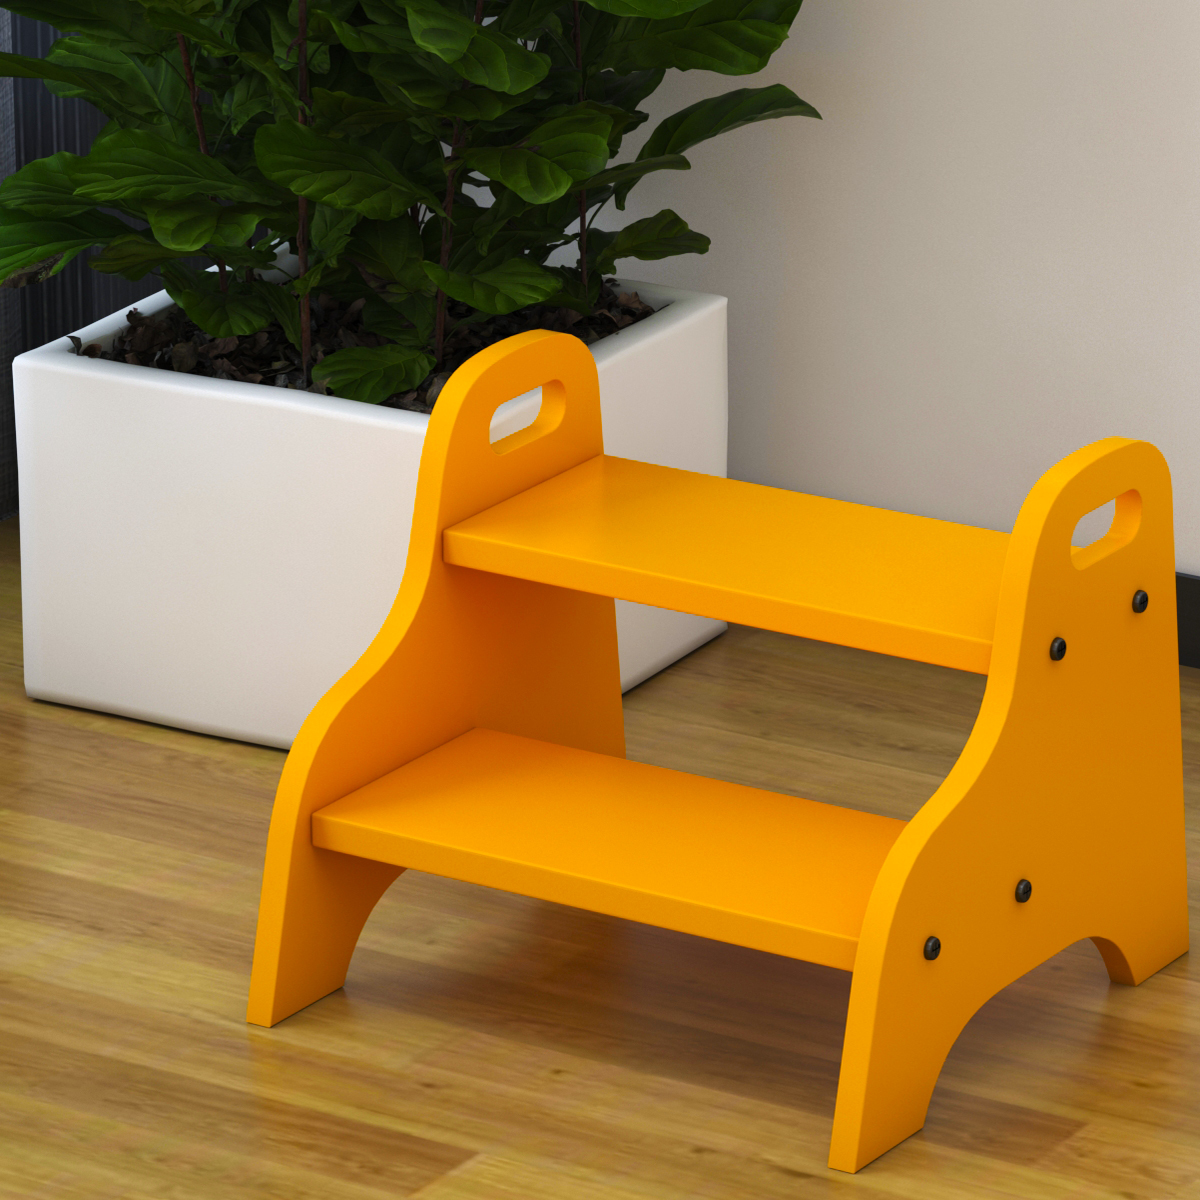 Wooden Two Steps Creative Children's Step Stool Chairs For Kids Wash Low Stool  Step Ladder Kid's Furniture 40X38X33cm